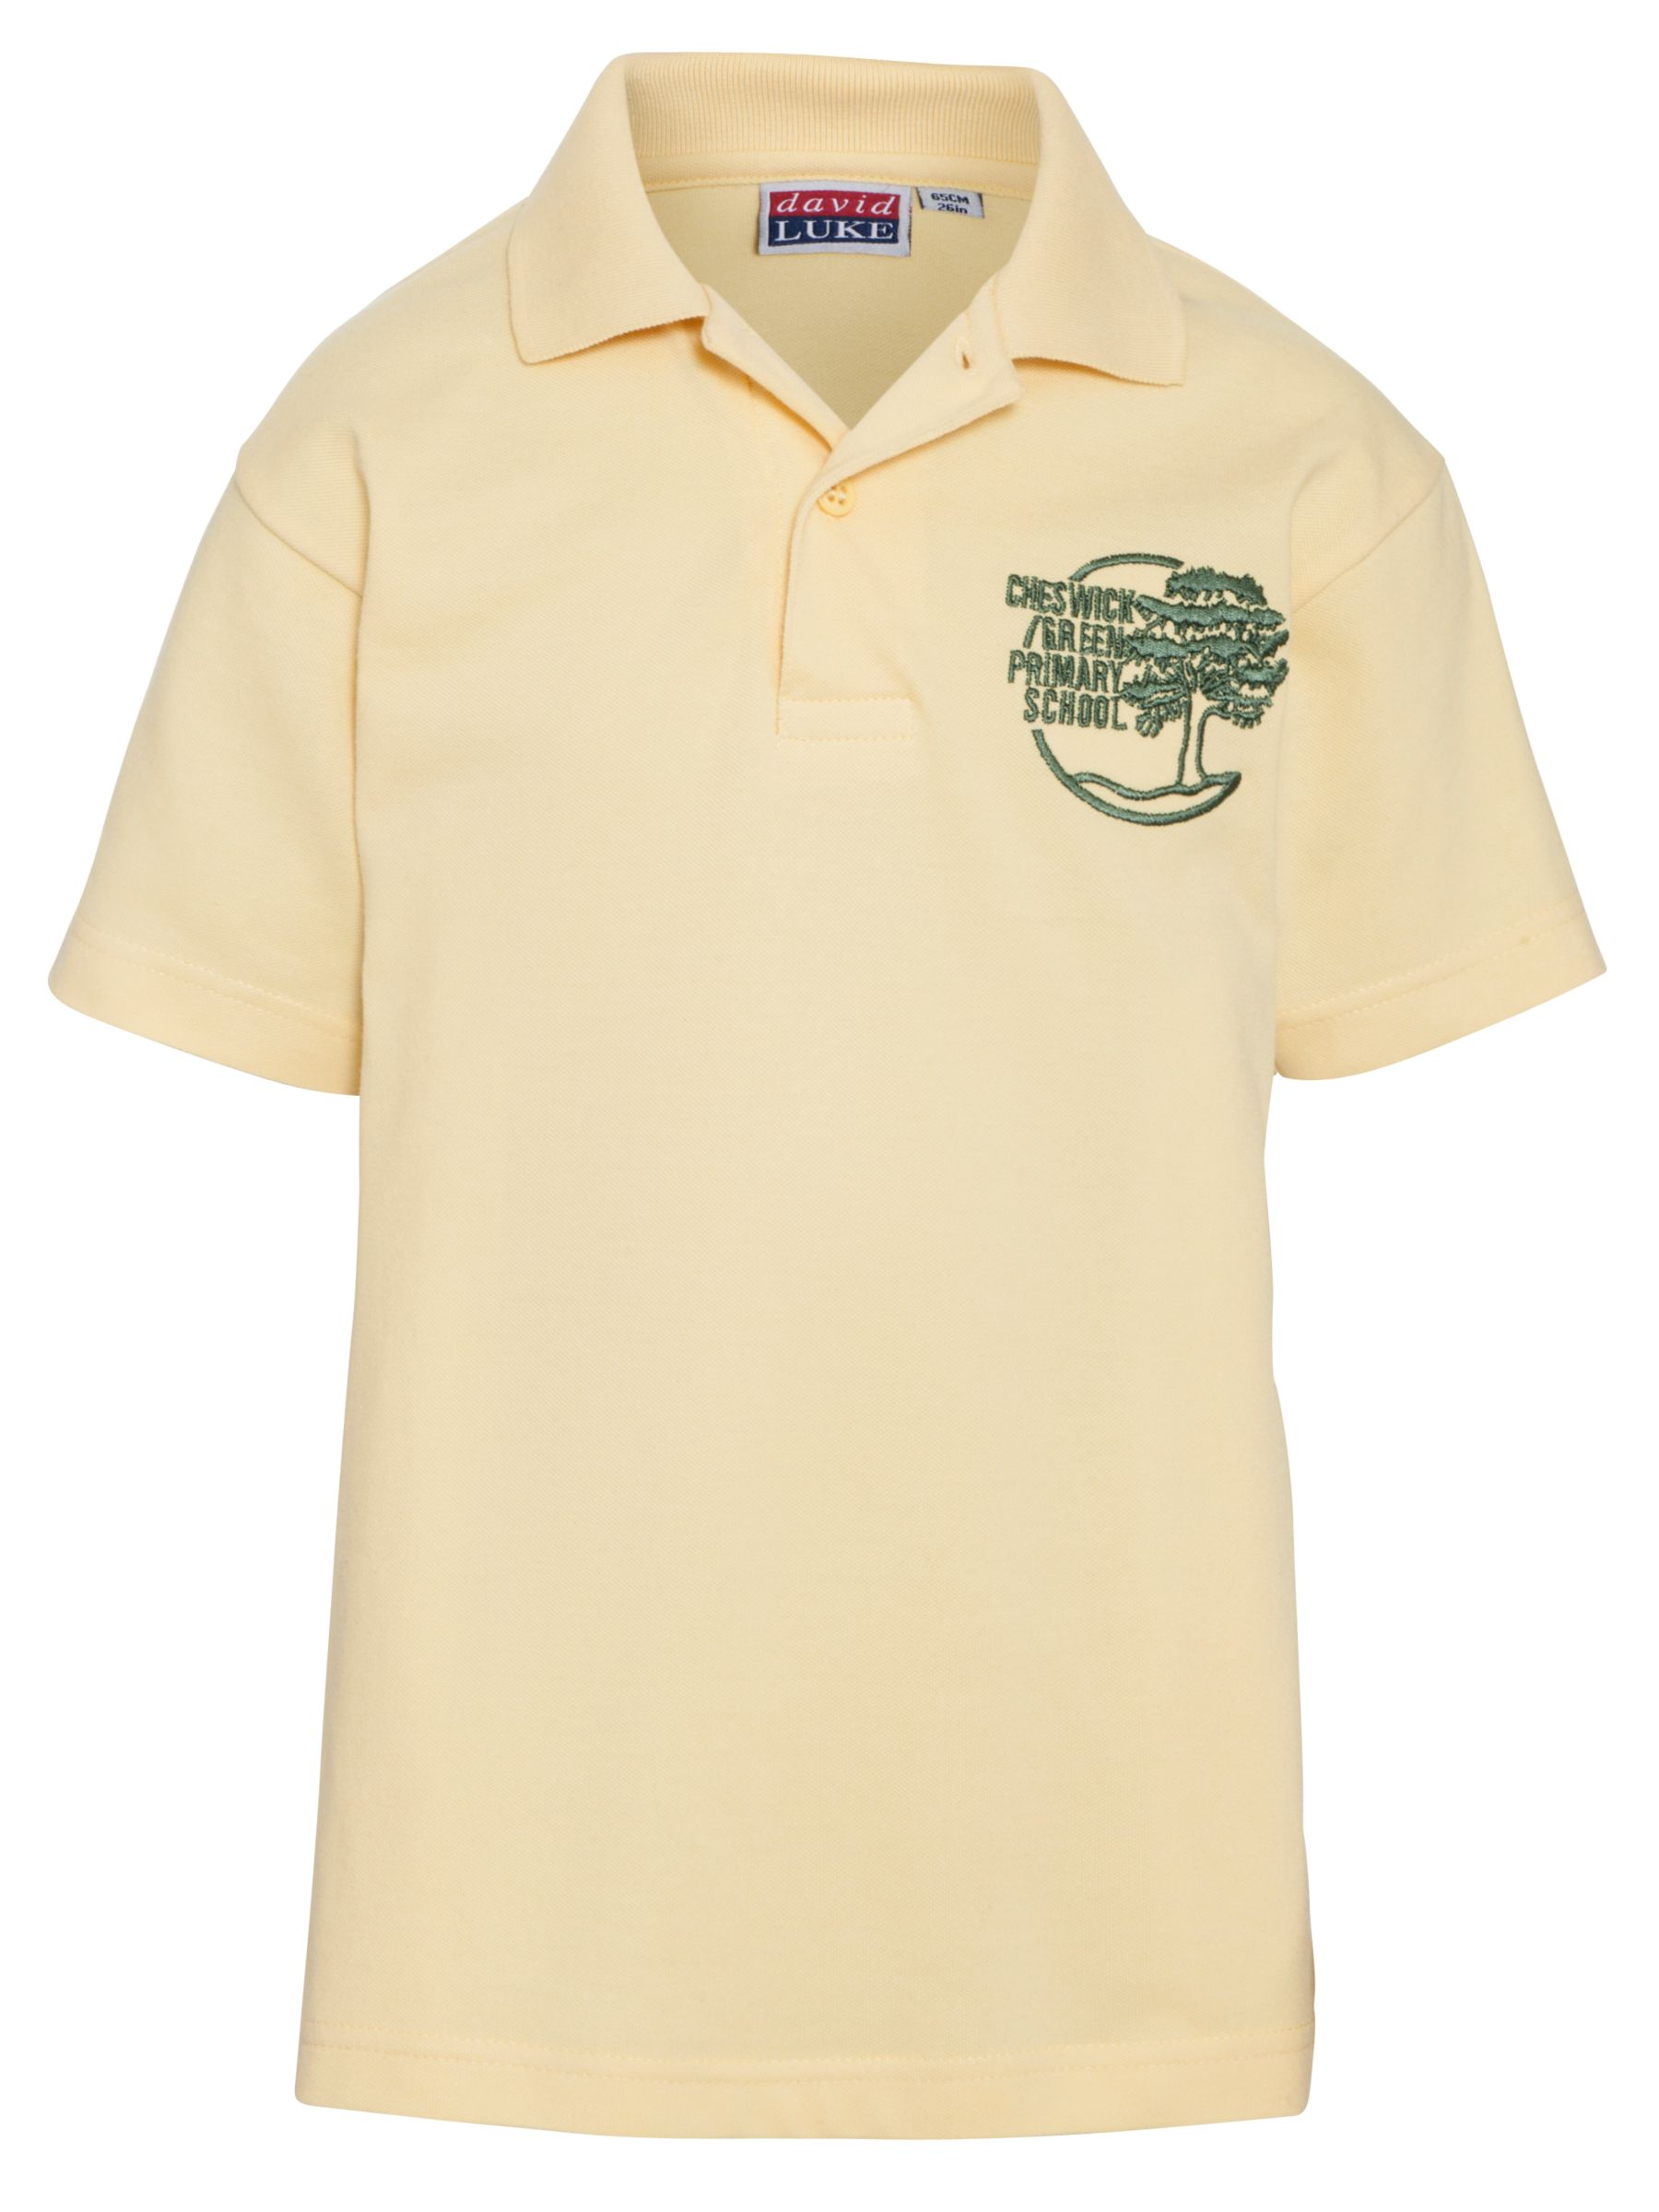 Cheswick Green Primary School Foundation Stage Unisex Polo Shirt Gold